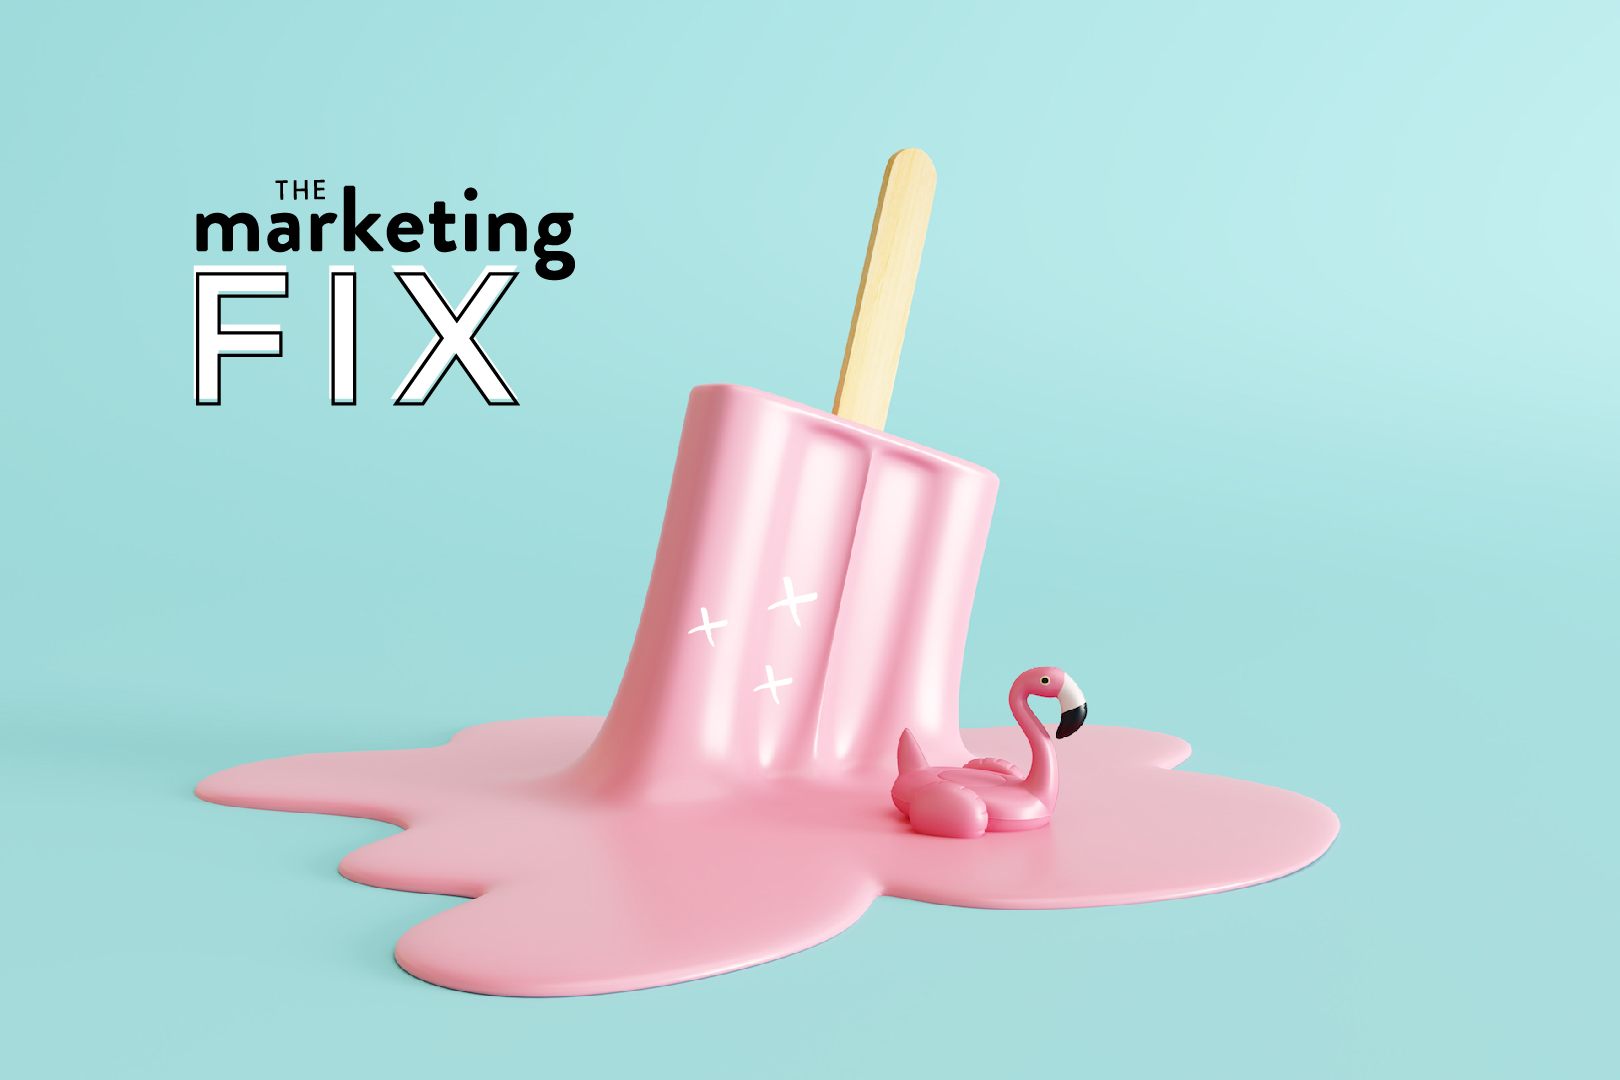 5 Minute Marketing Fixes